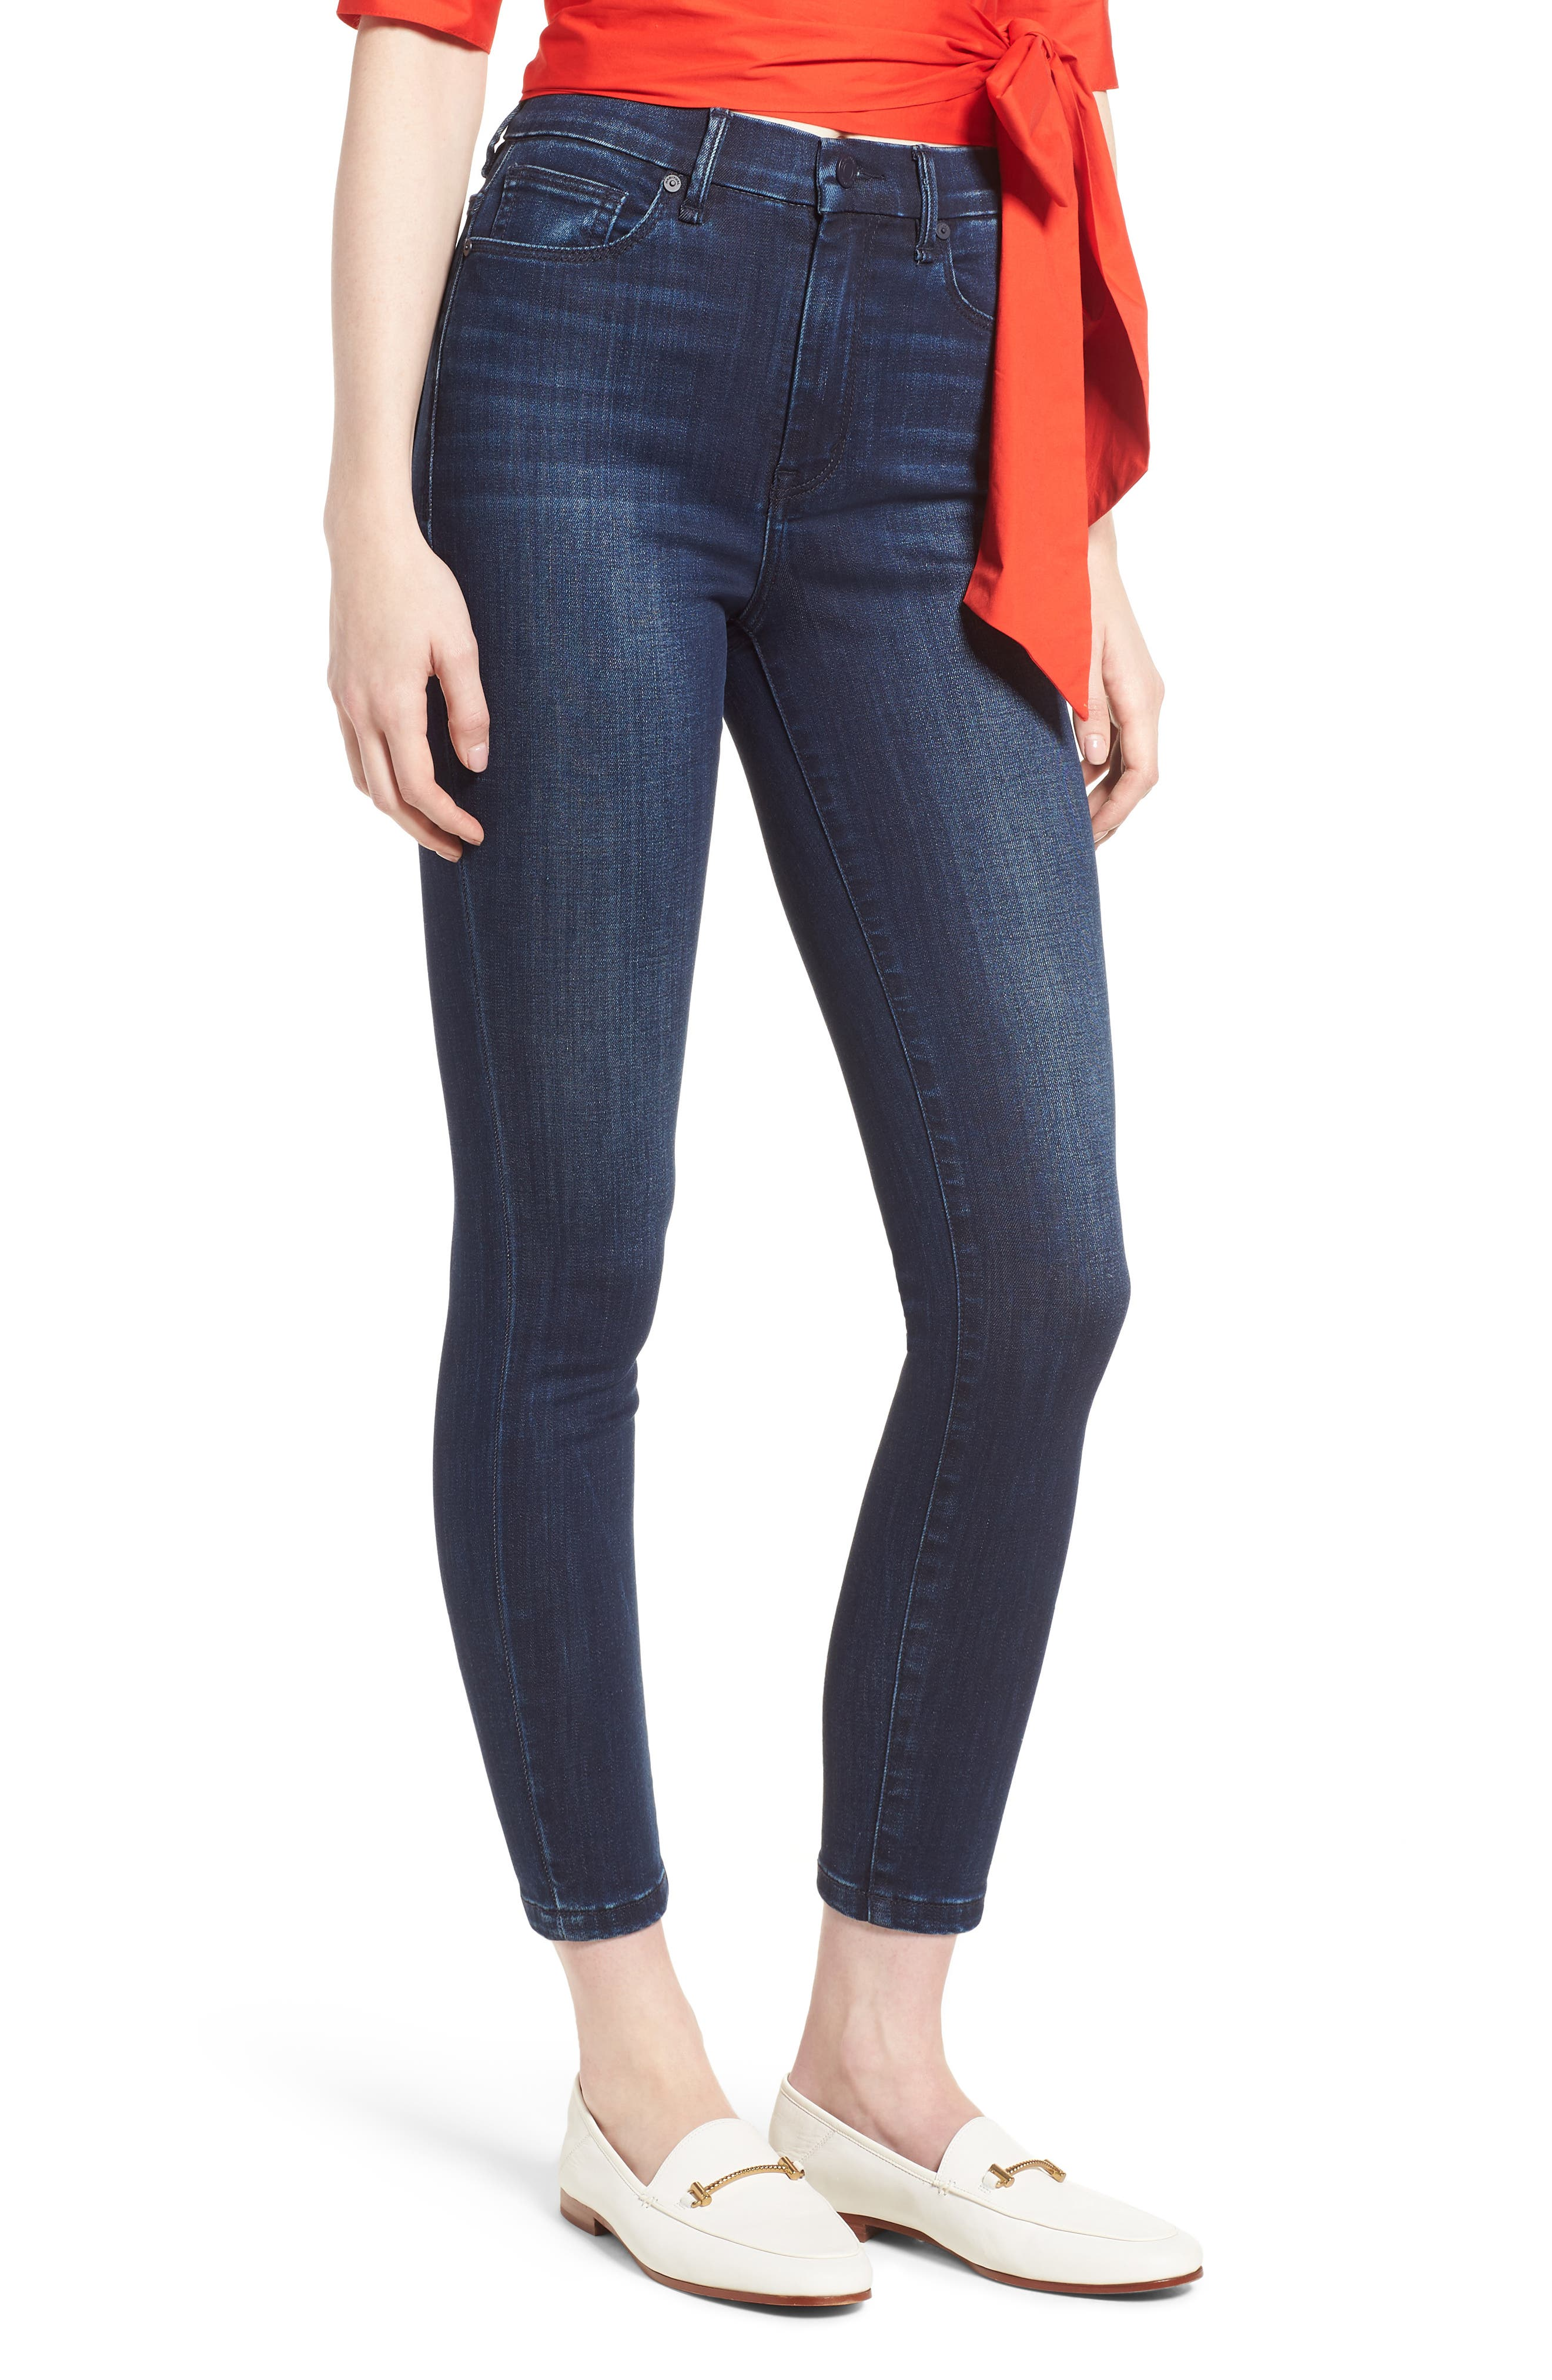 Cressa High Rise Ankle Skinny Jeans,                         Main,                         color, SUGAR MAPLE